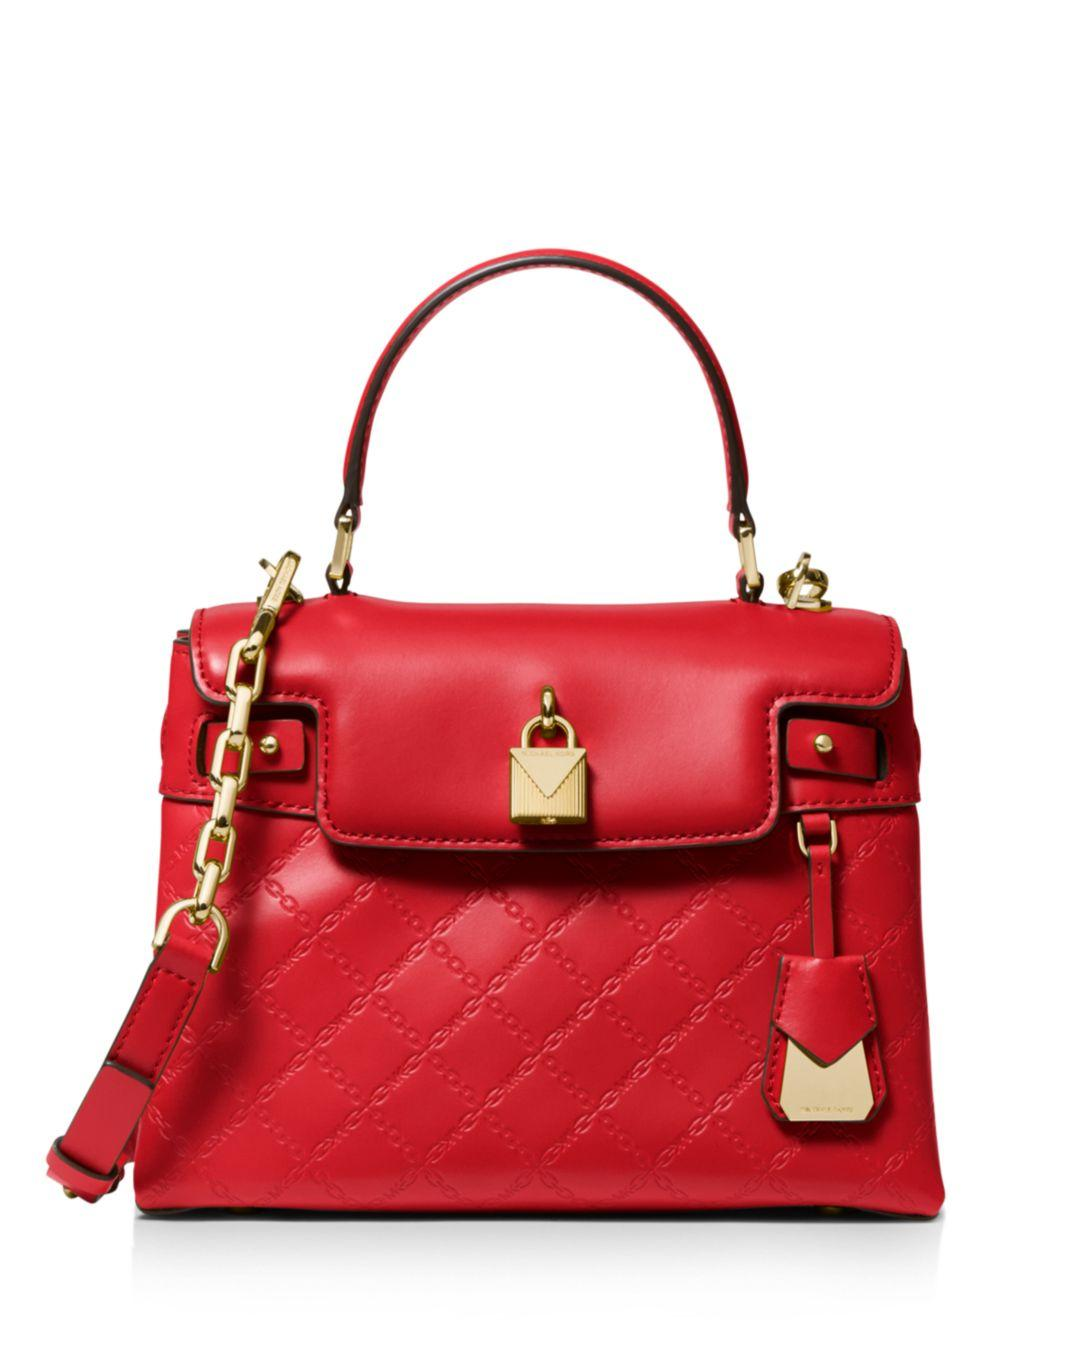 0cb5a1aba750 MICHAEL Michael Kors Medium Leather Satchel in Red - Lyst